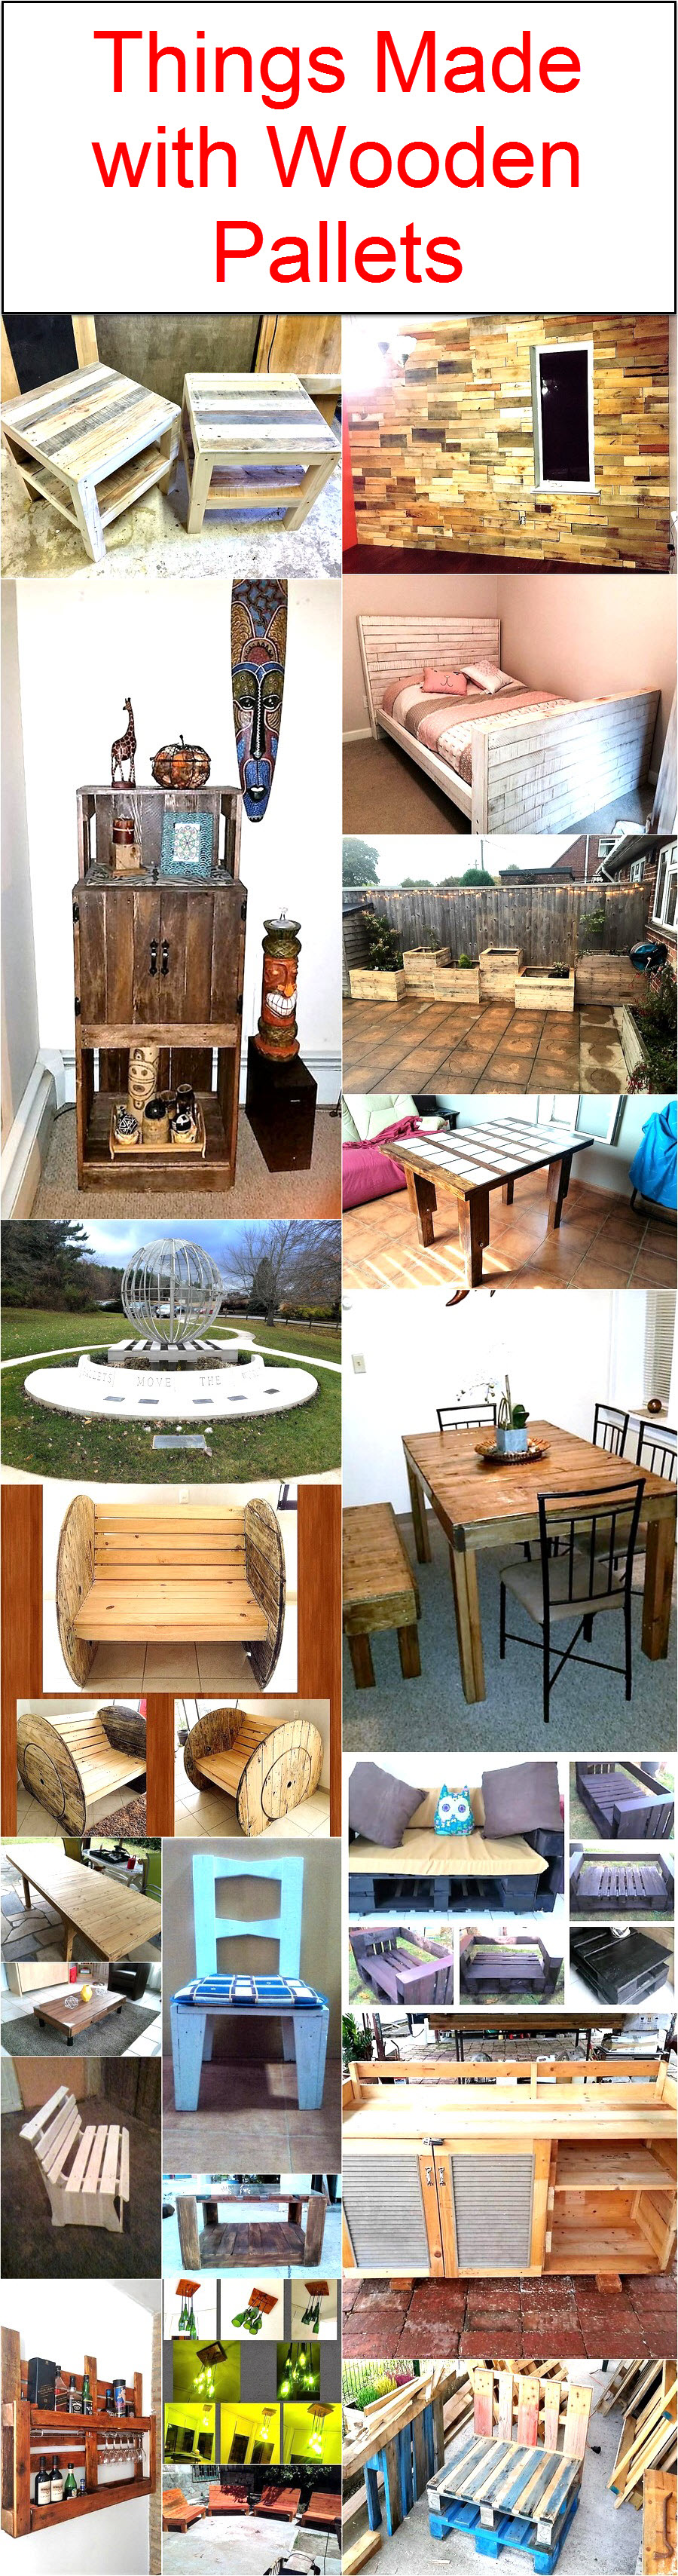 things-made-with-wooden-pallets